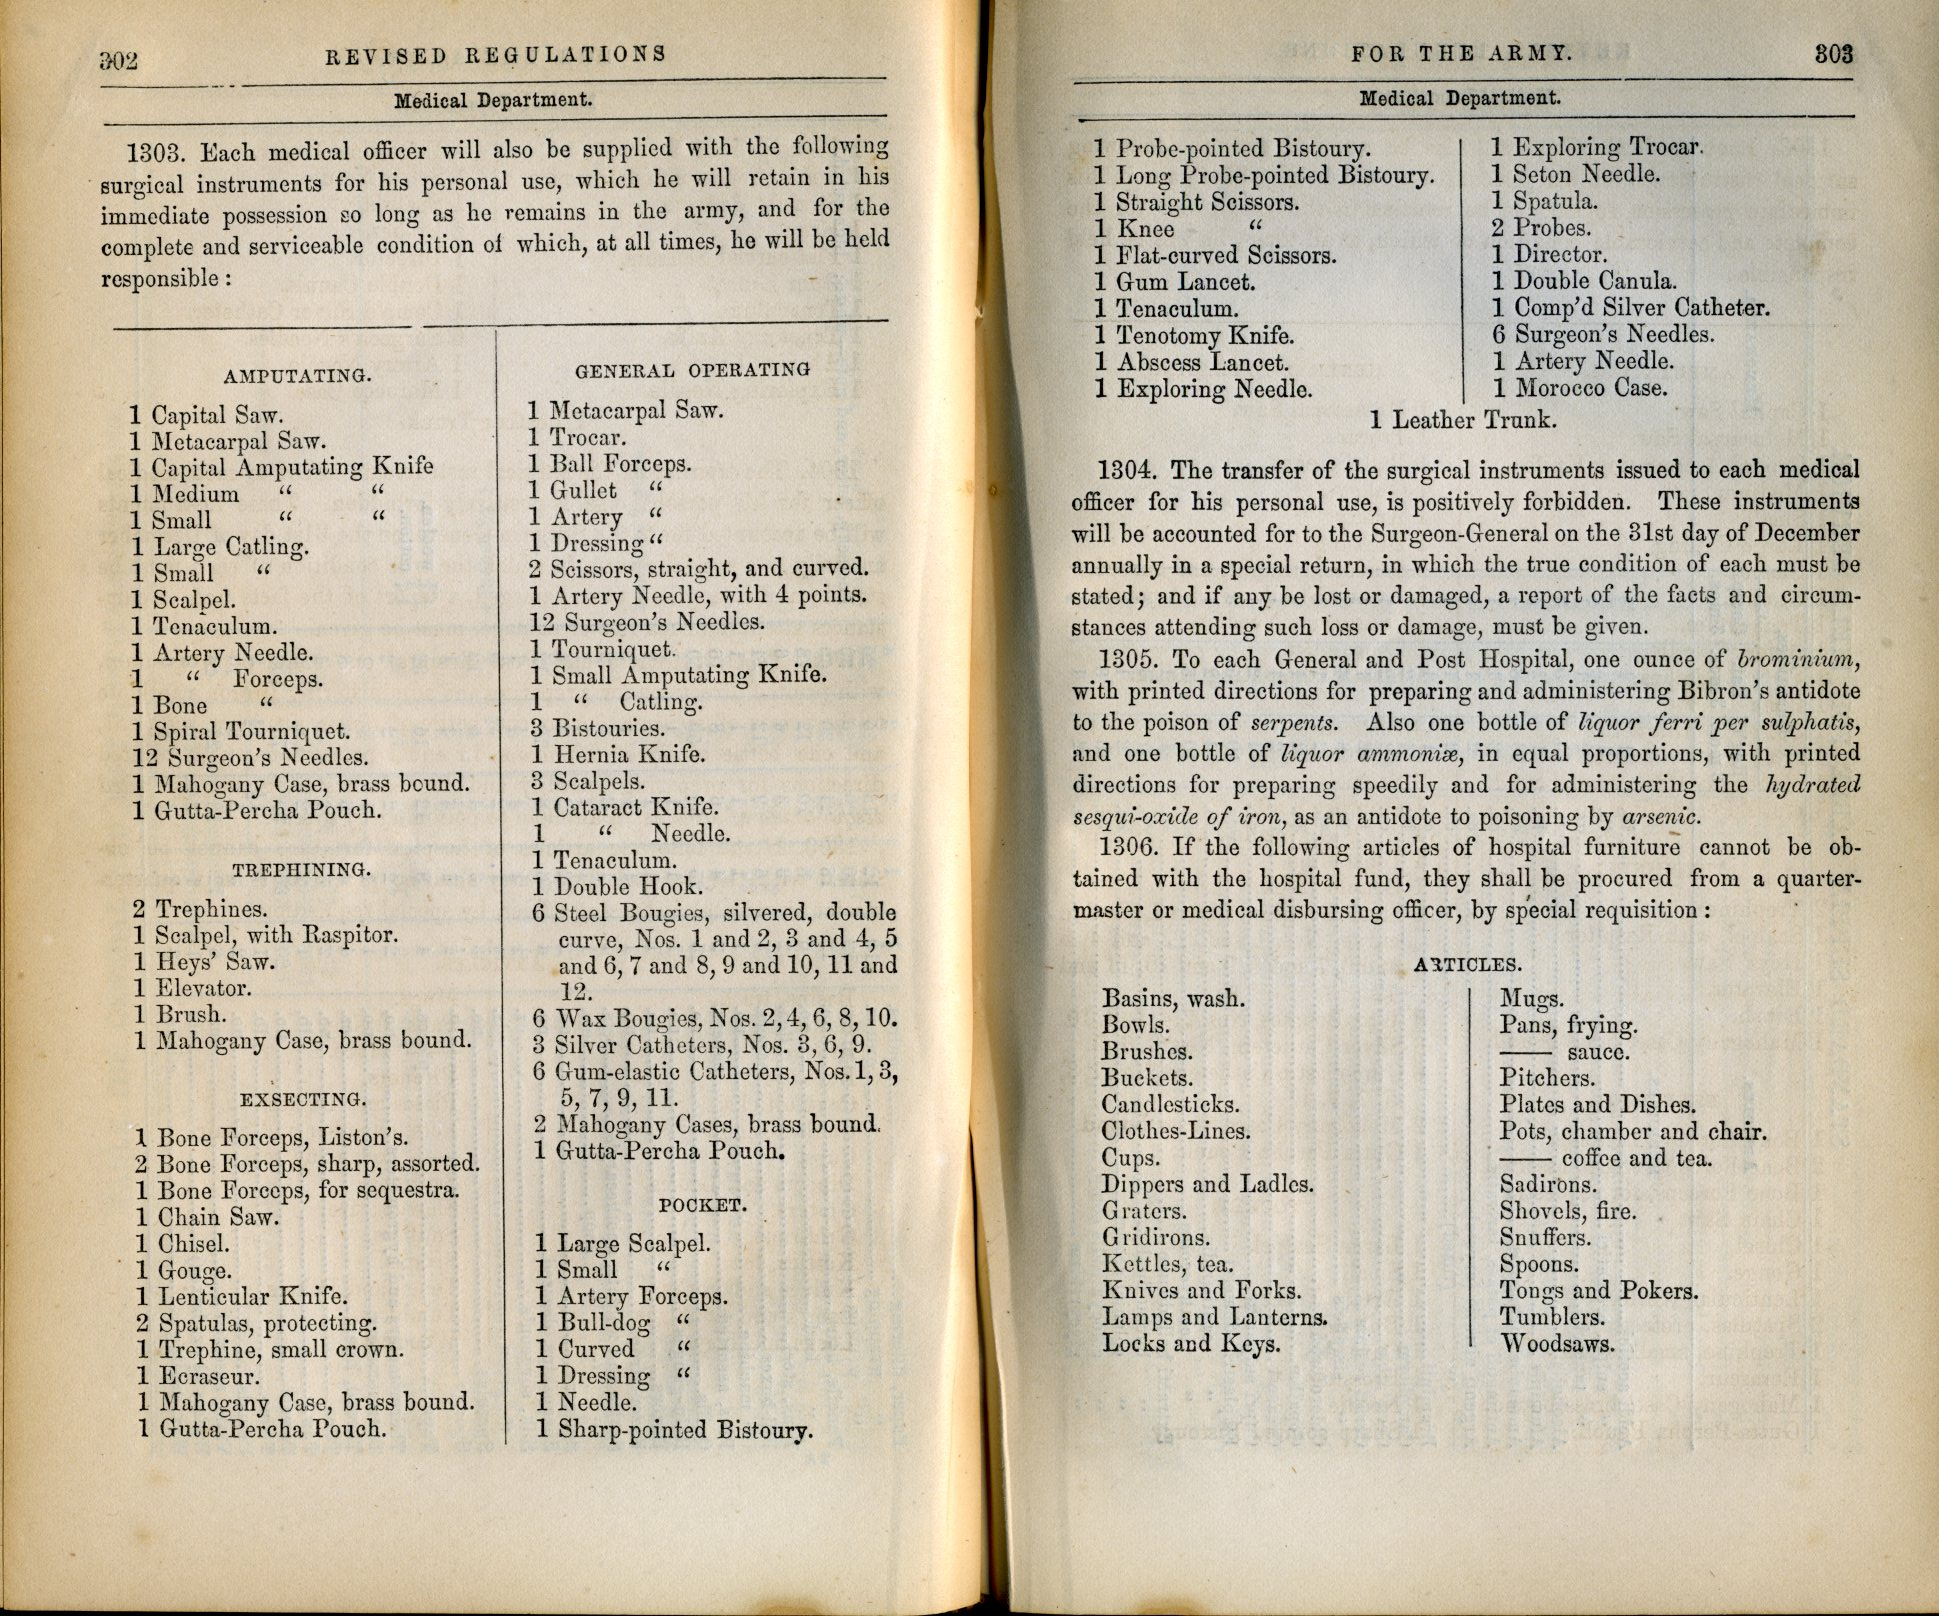 1861 Army supply table listing surgical instruments